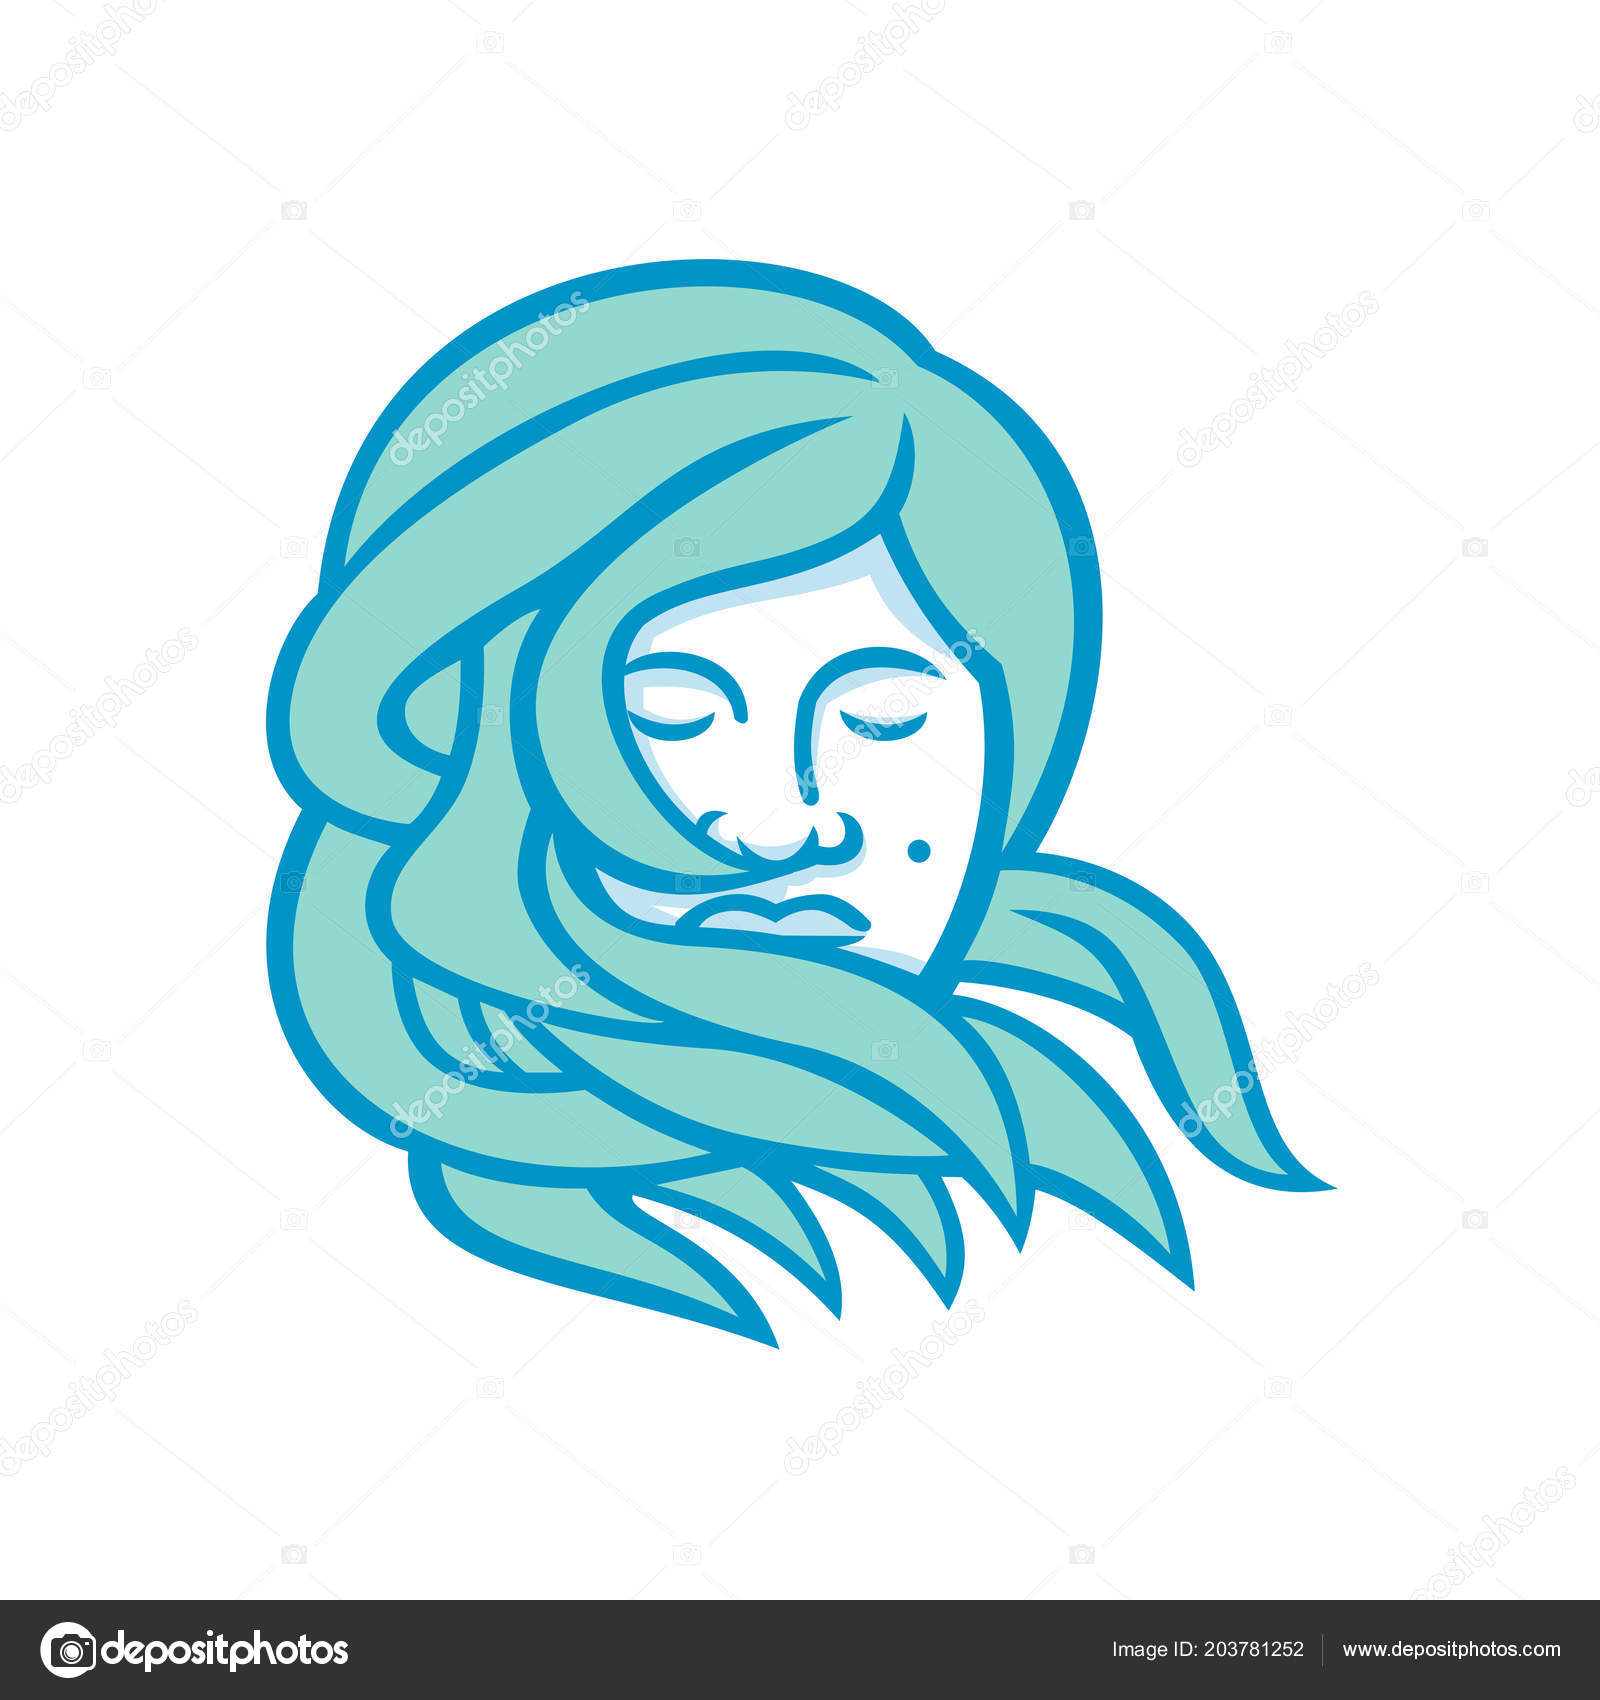 Mono Line Illustration Face Polynesian Woman Flowing Hair Viewed